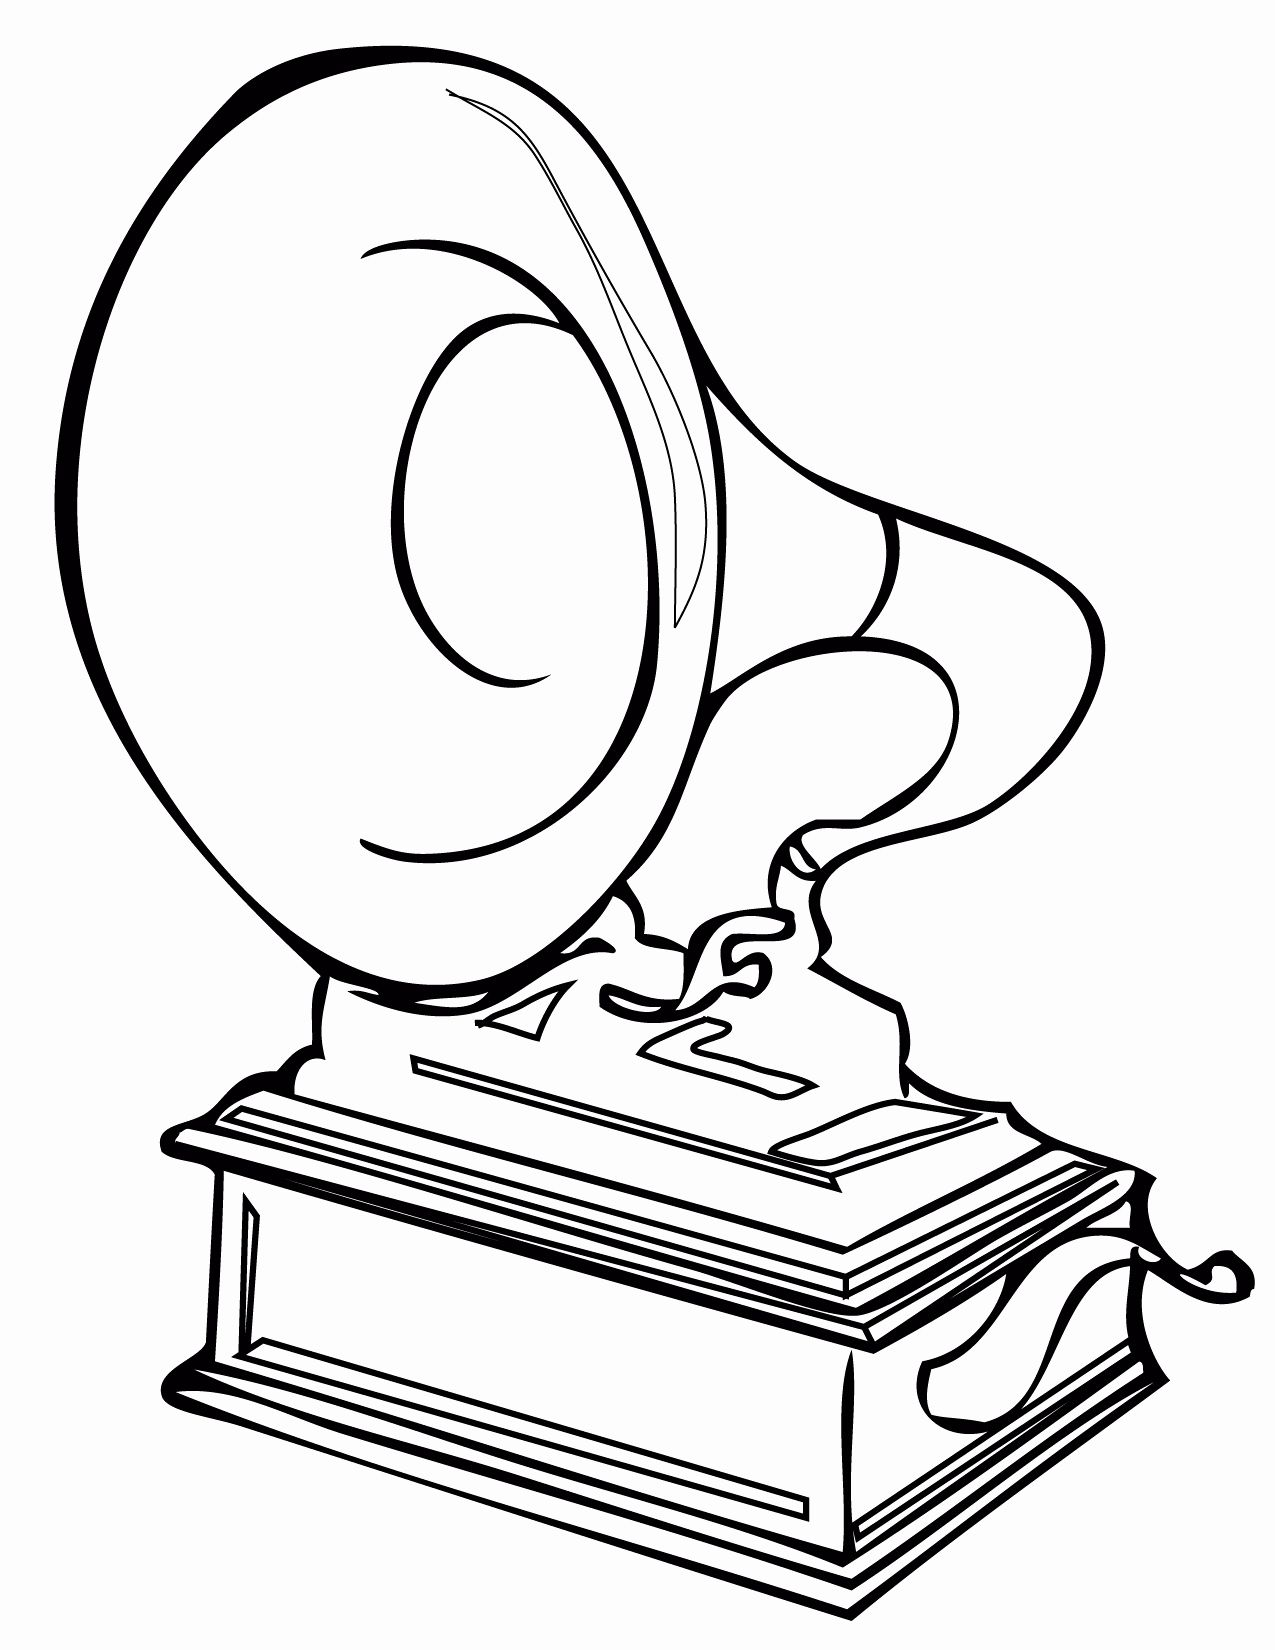 Thomas Edison Coloring Pages Best Of Phonograph Thomas Edison Coloring Pages Coloring Home In 2020 Coloring Pages Color Printable Coloring